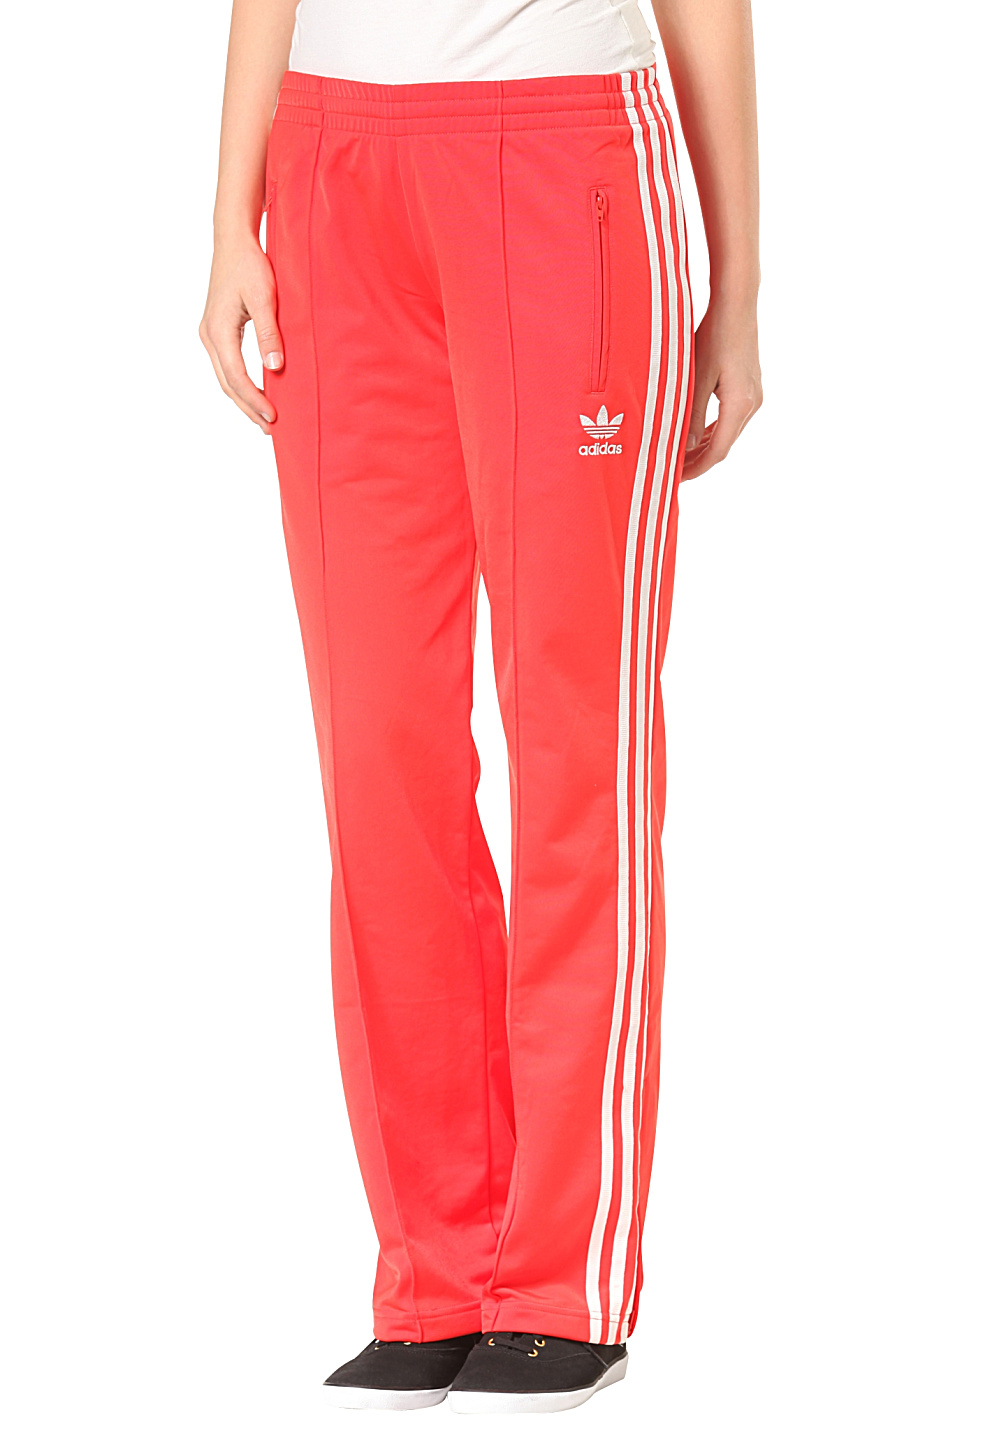 ADIDAS Firebird Sweat Pant - Trackpants for Women - Red - Planet Sports 82bc99f099